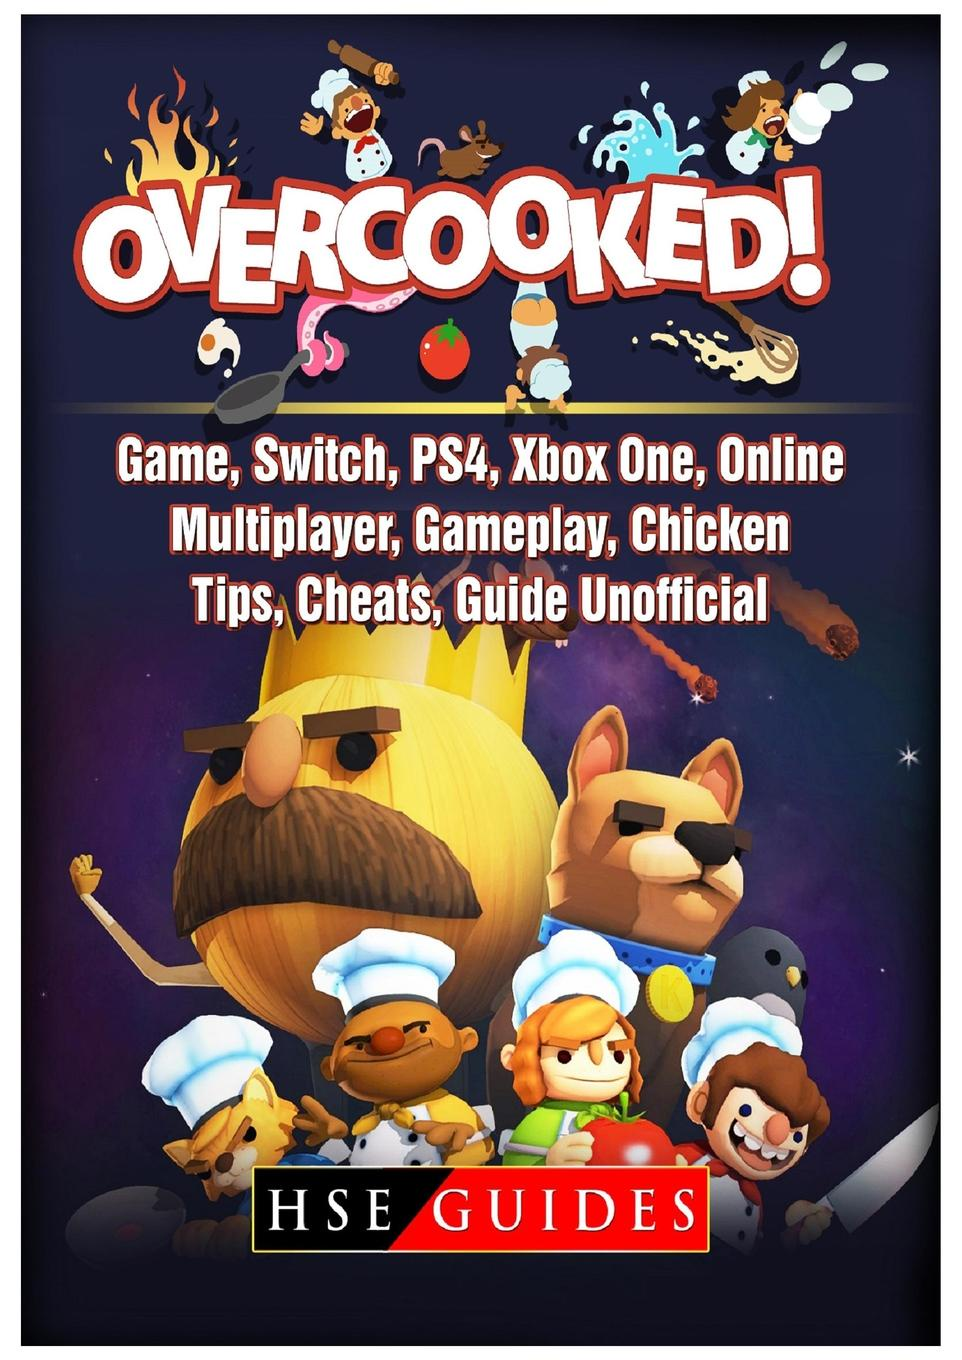 HSE Guides. Overcooked Game, Switch, PS4, Xbox One, Online, Multiplayer, Gameplay, Chicken, Tips, Cheats, Guide Unofficial